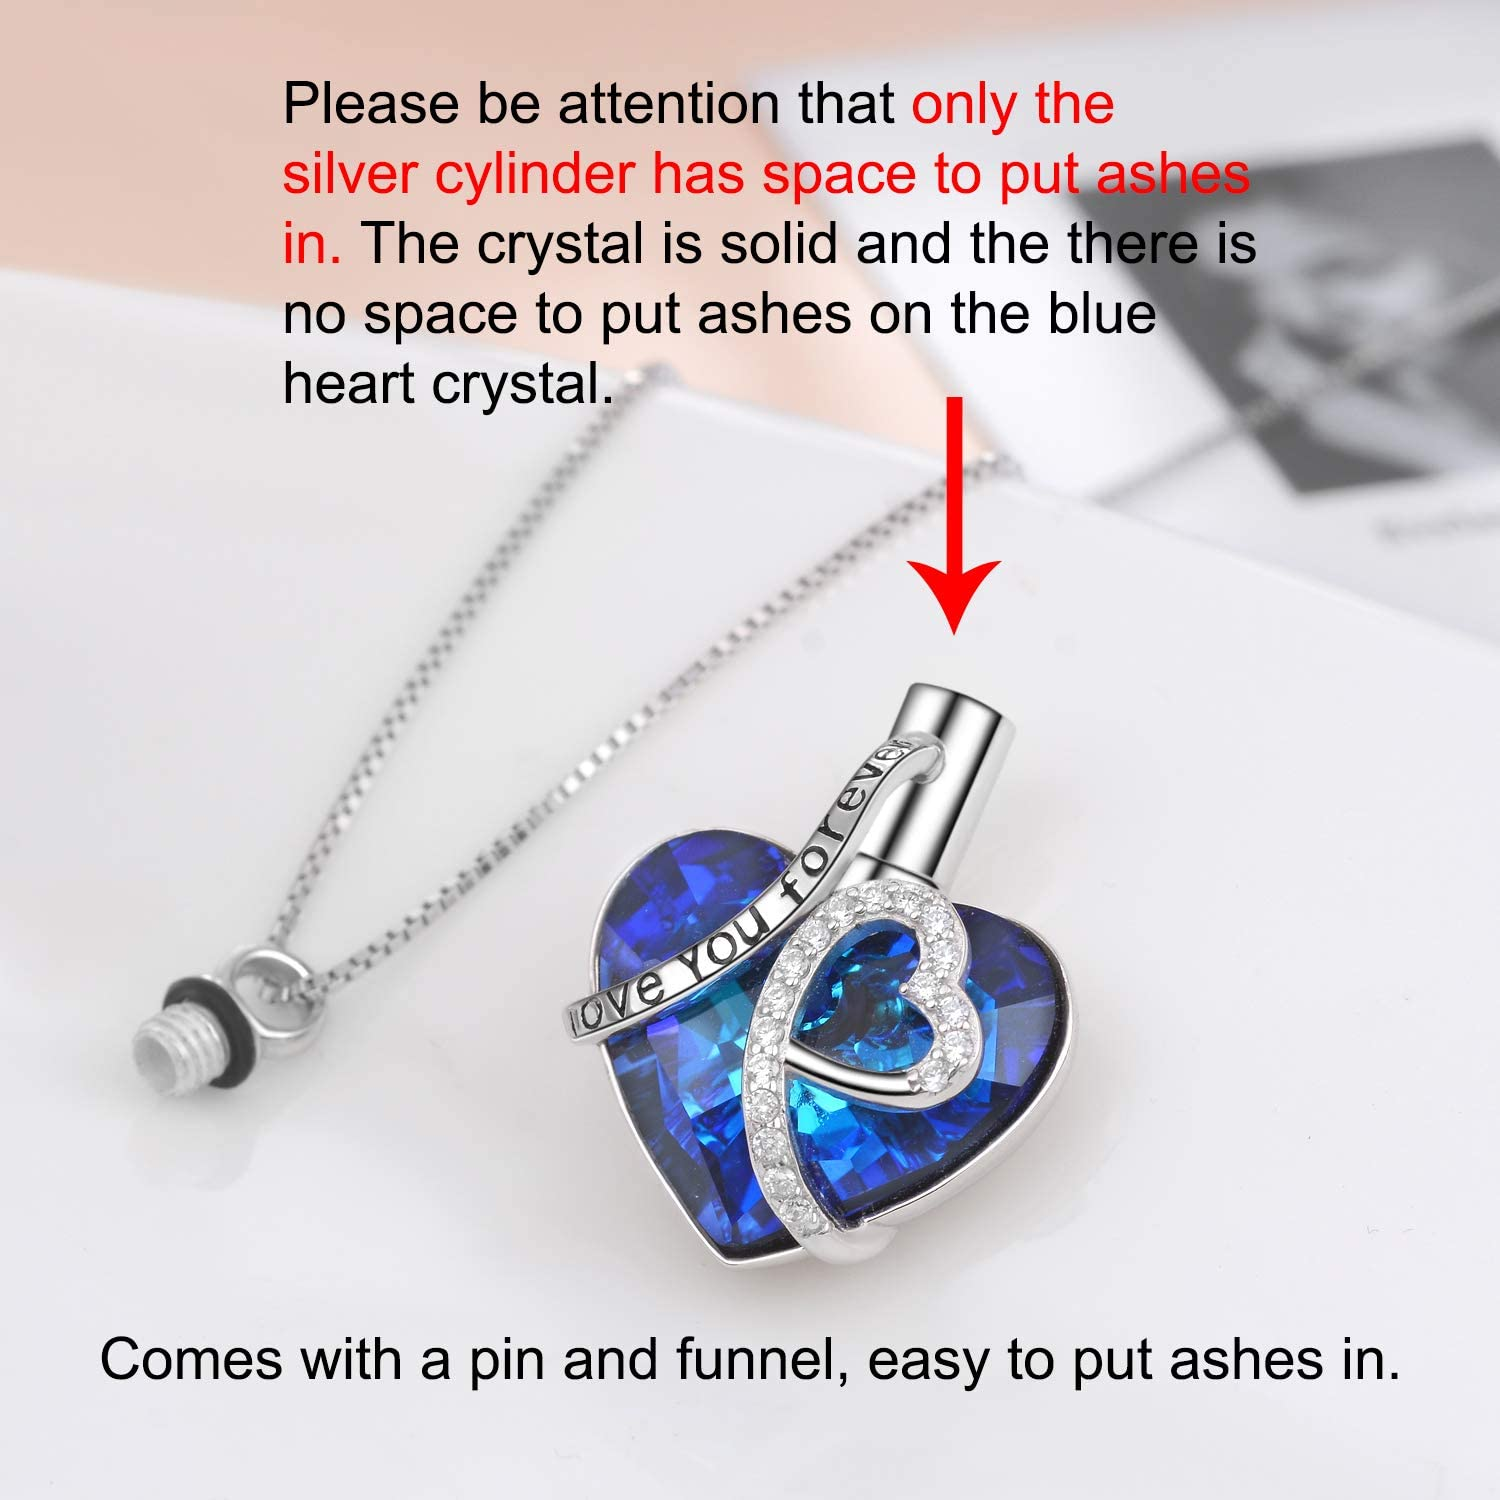 ANAZOZ Heart The Ocean Crystal Pendant S925 Sterling Silver Necklace Gift Box